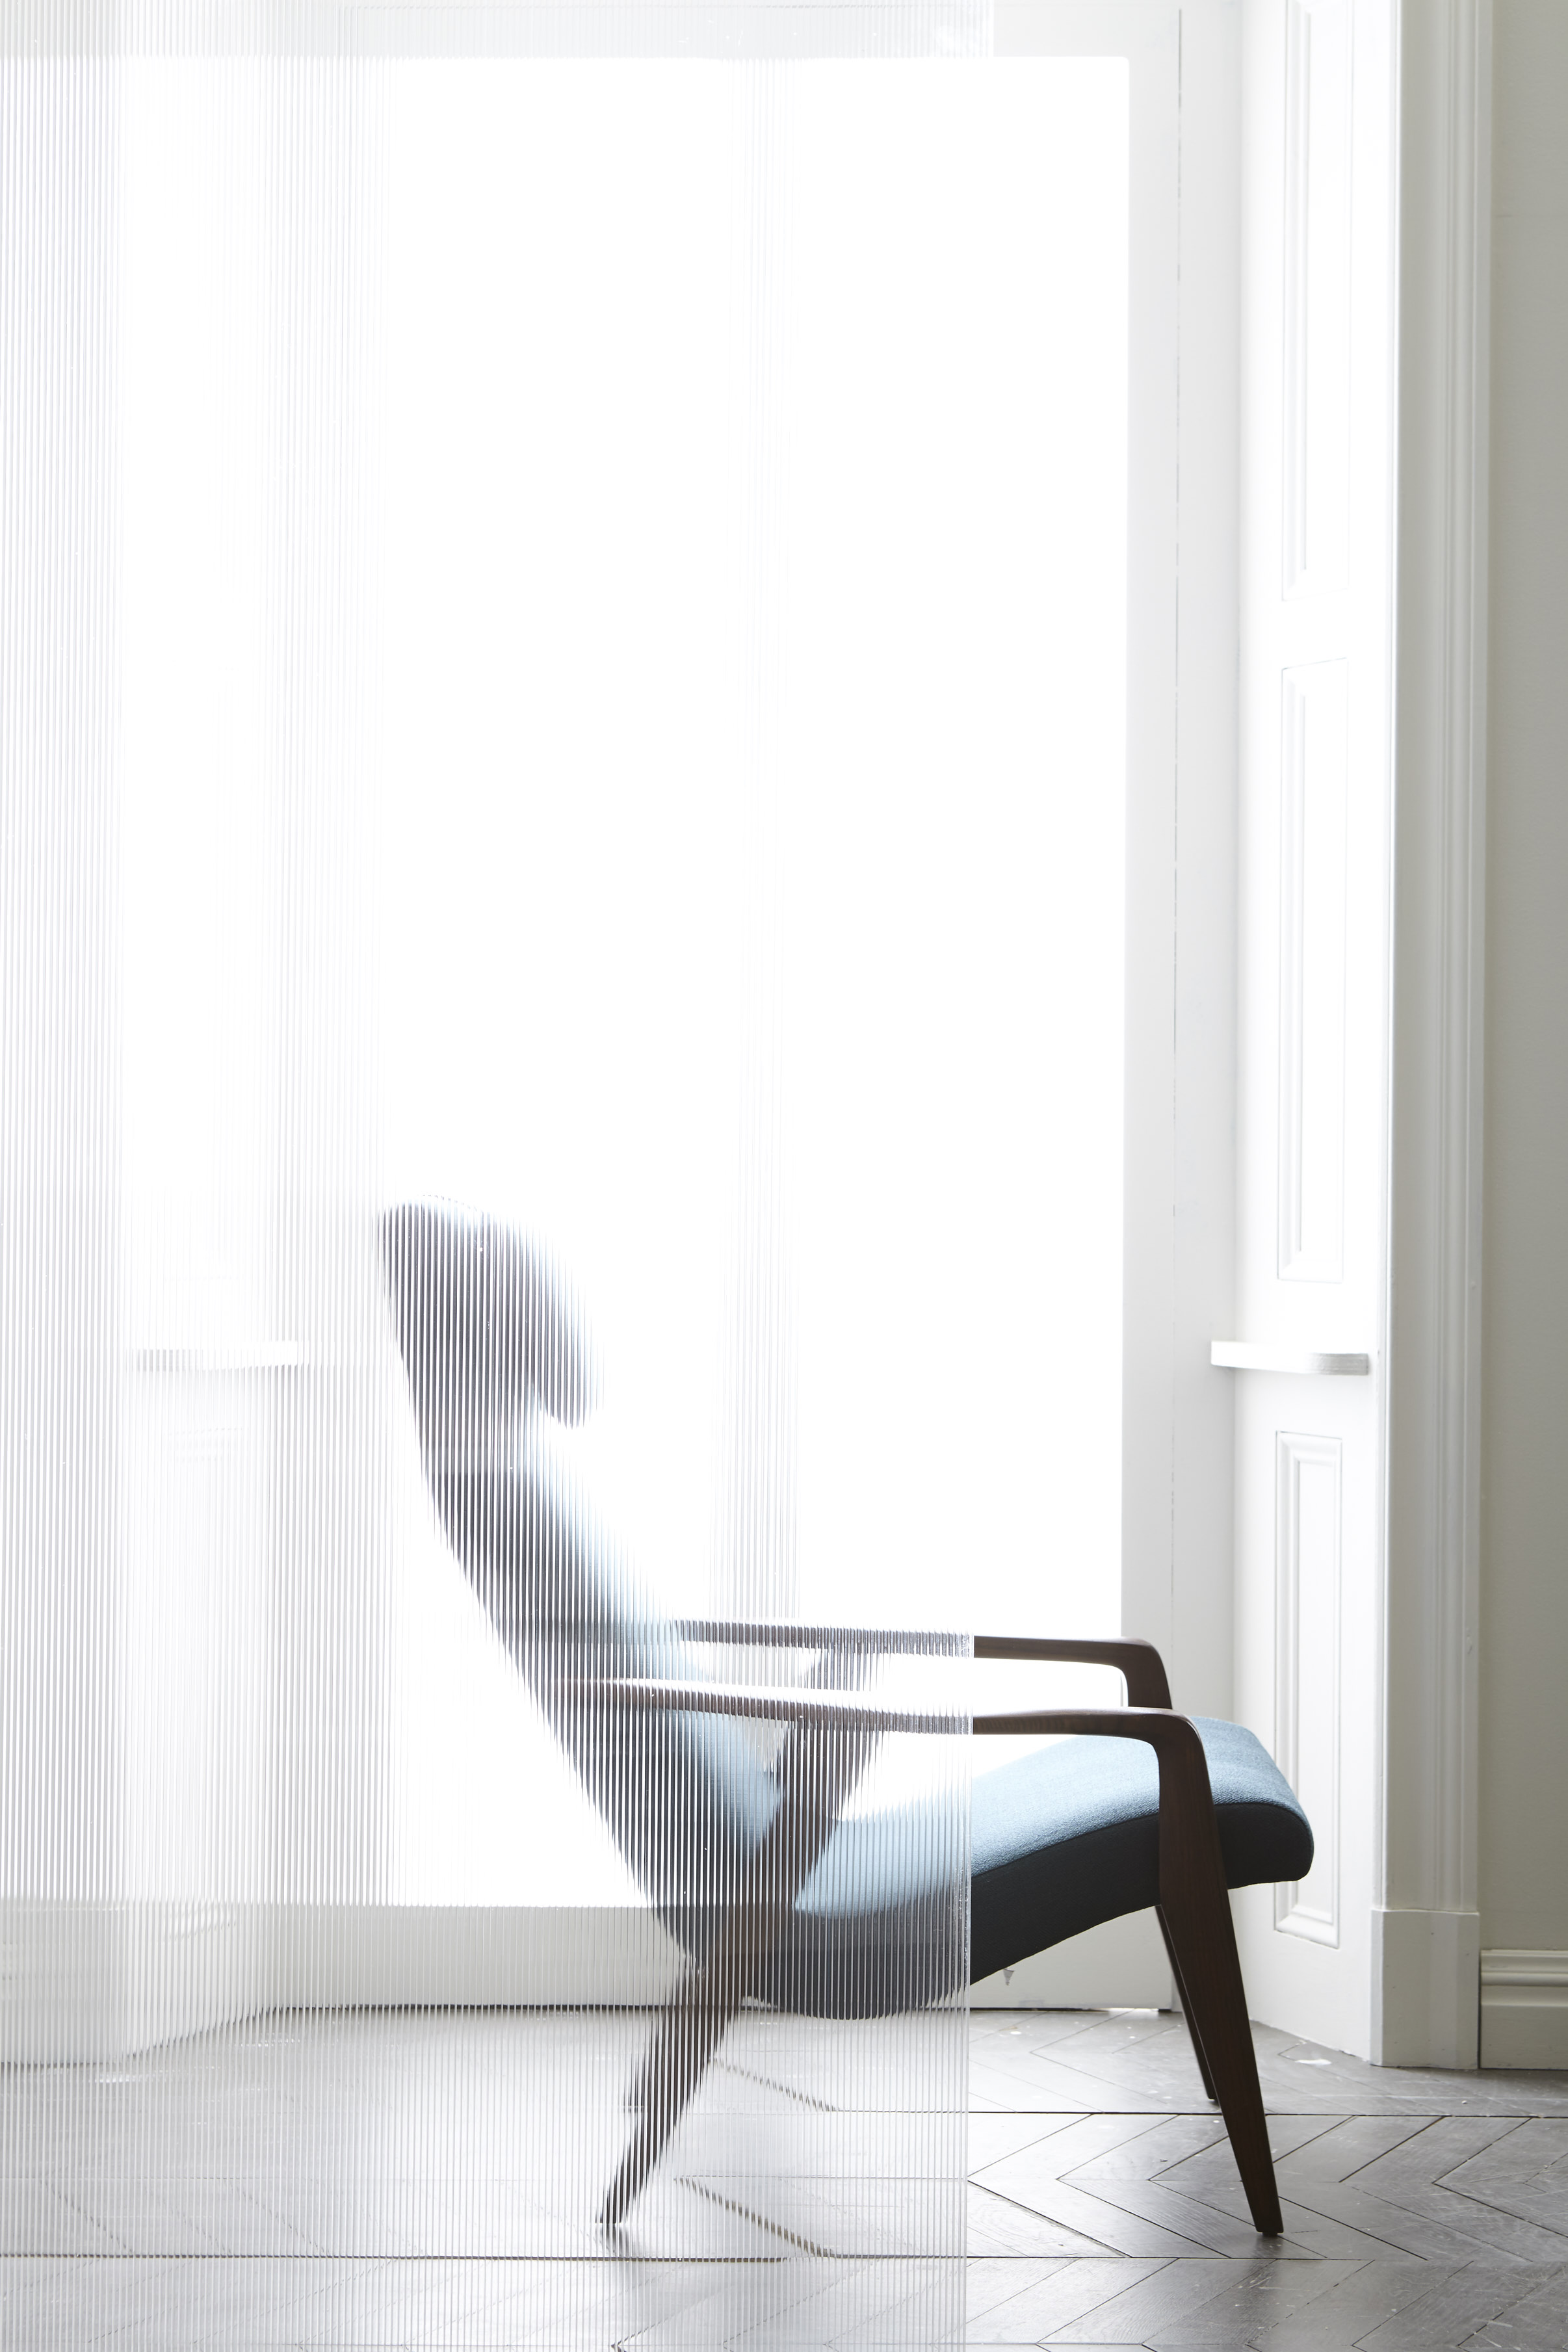 ecom-feature-frosted-glass-chair-fa17-0557.jpg